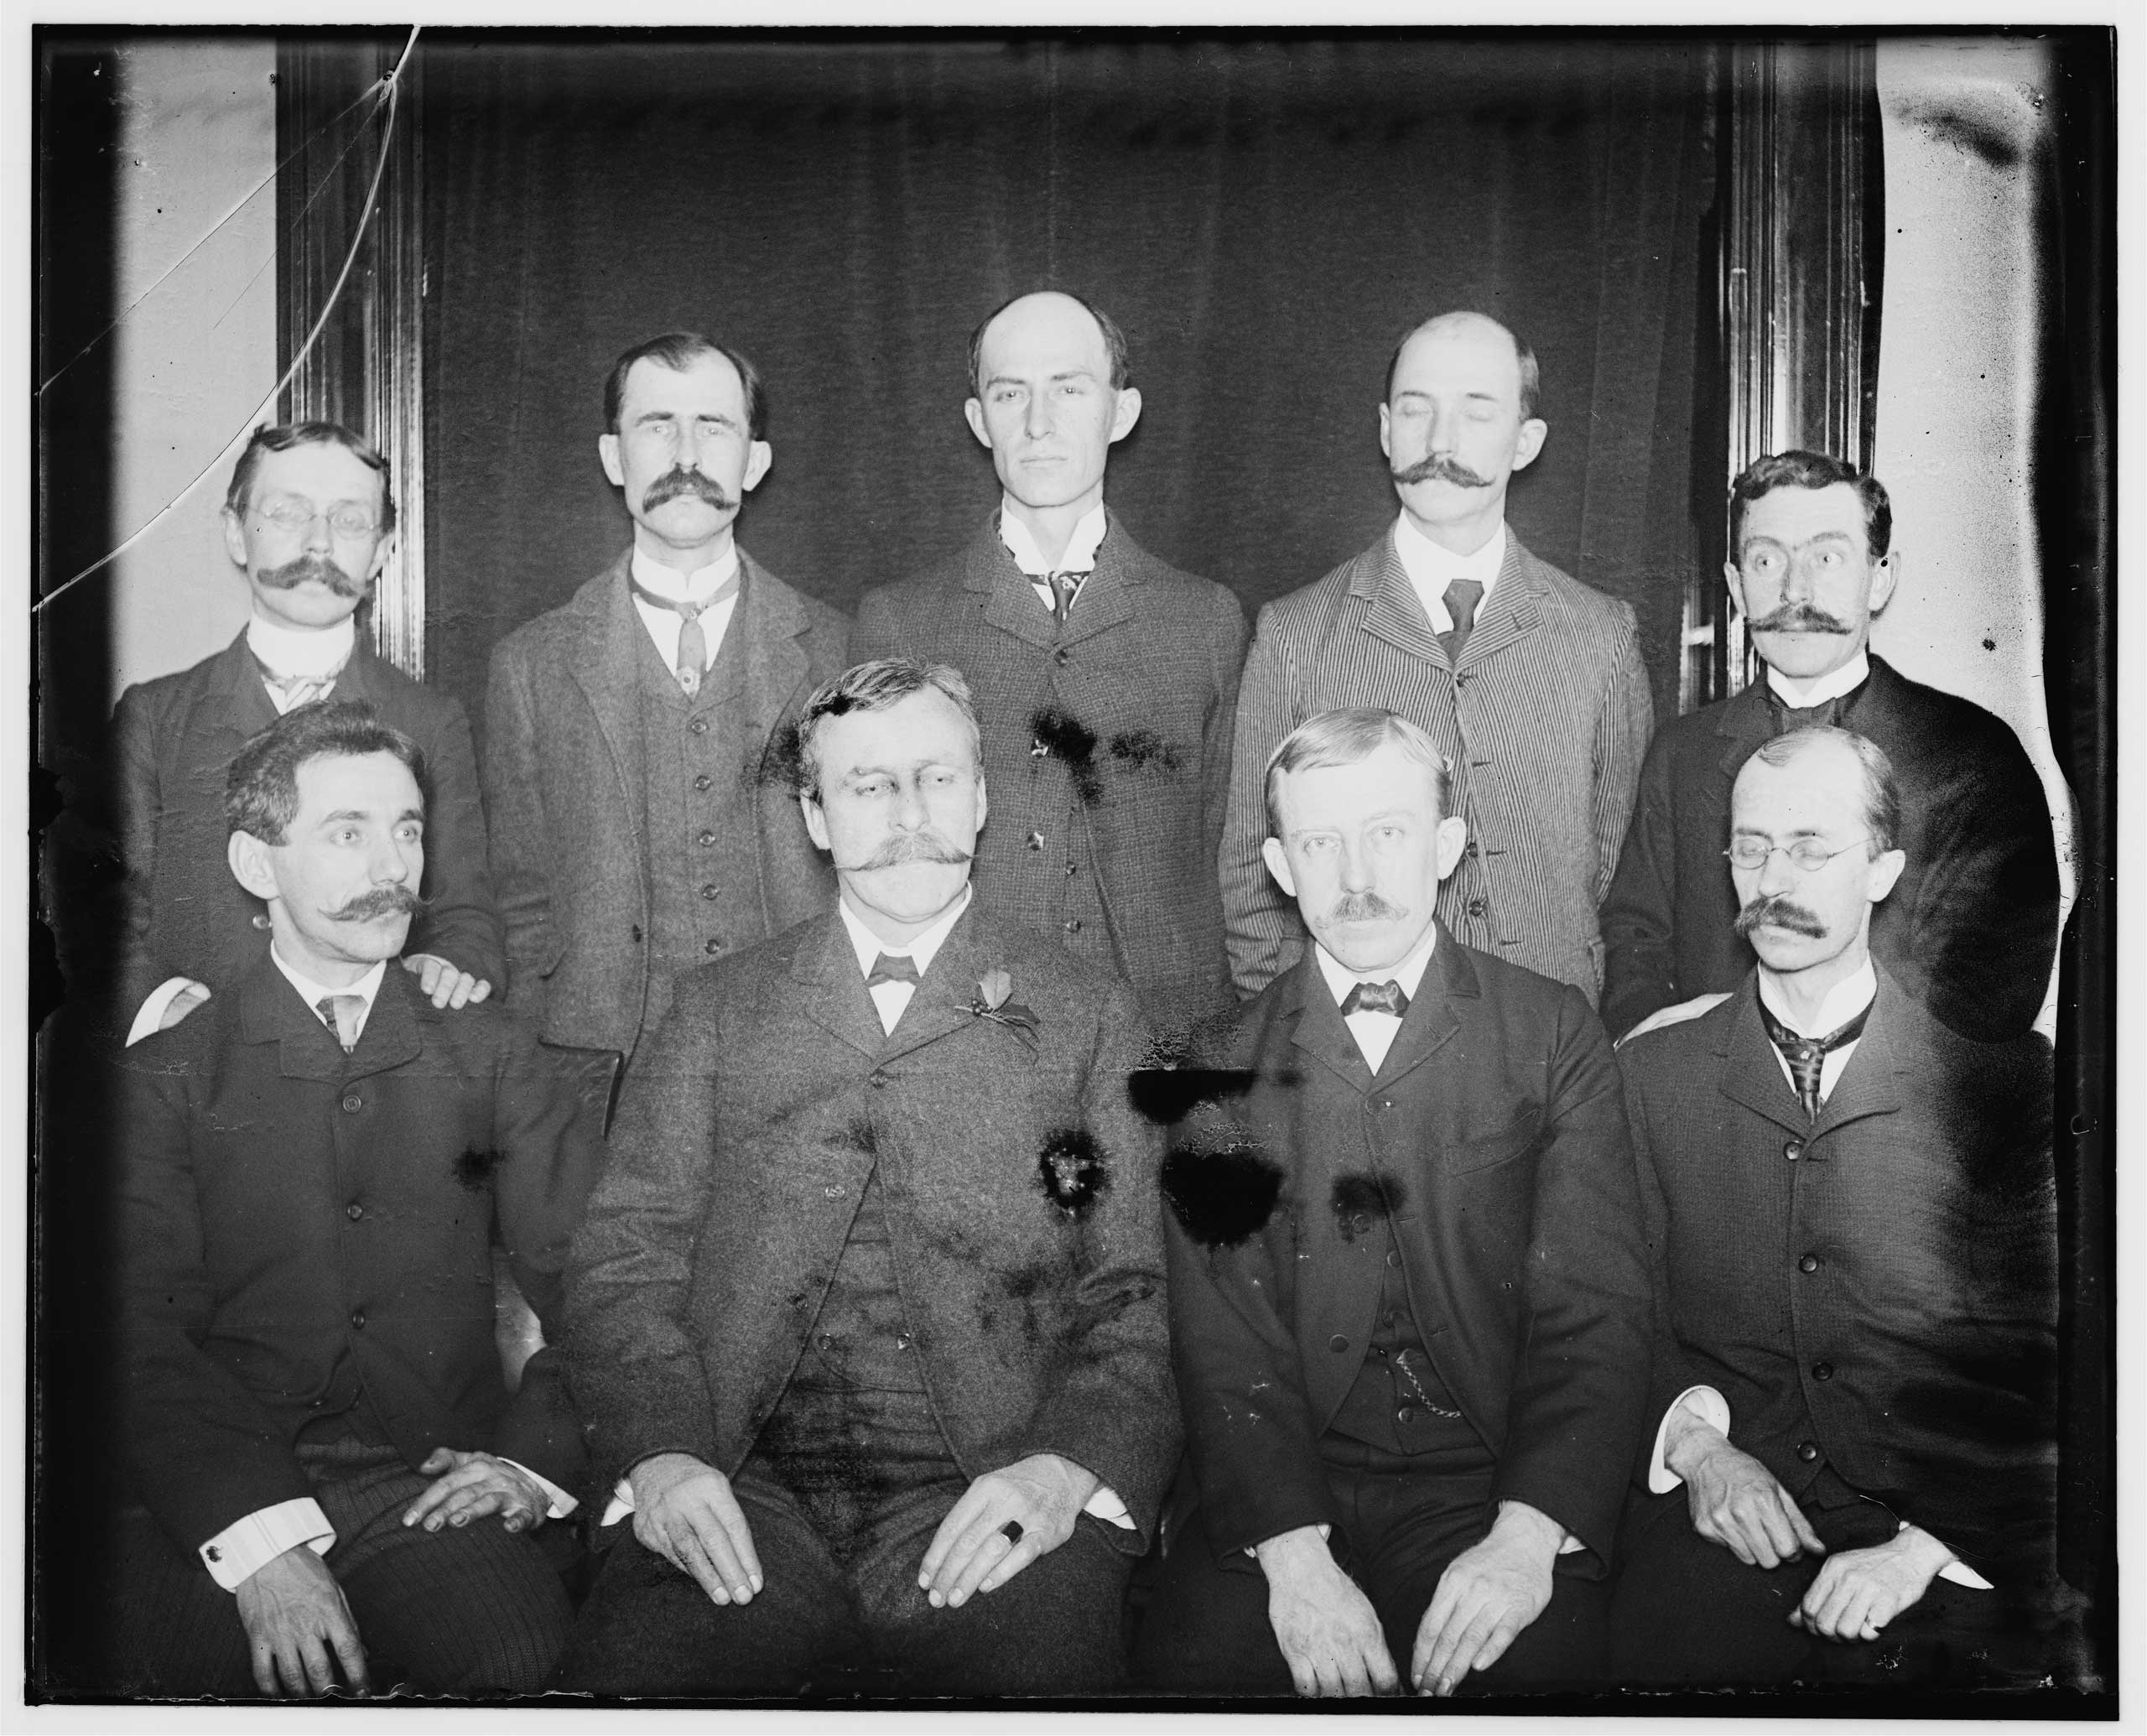 THE WRIGHTS: Orville and Wilbur Wright are famous for flying, but they weren't the only siblings in the family. Wilbur Wright (no mustache) is pictured here with Reuchlin Wright next to him, on the left, and Lorin Wright, seated lower left. Katharine Wright is not pictured.